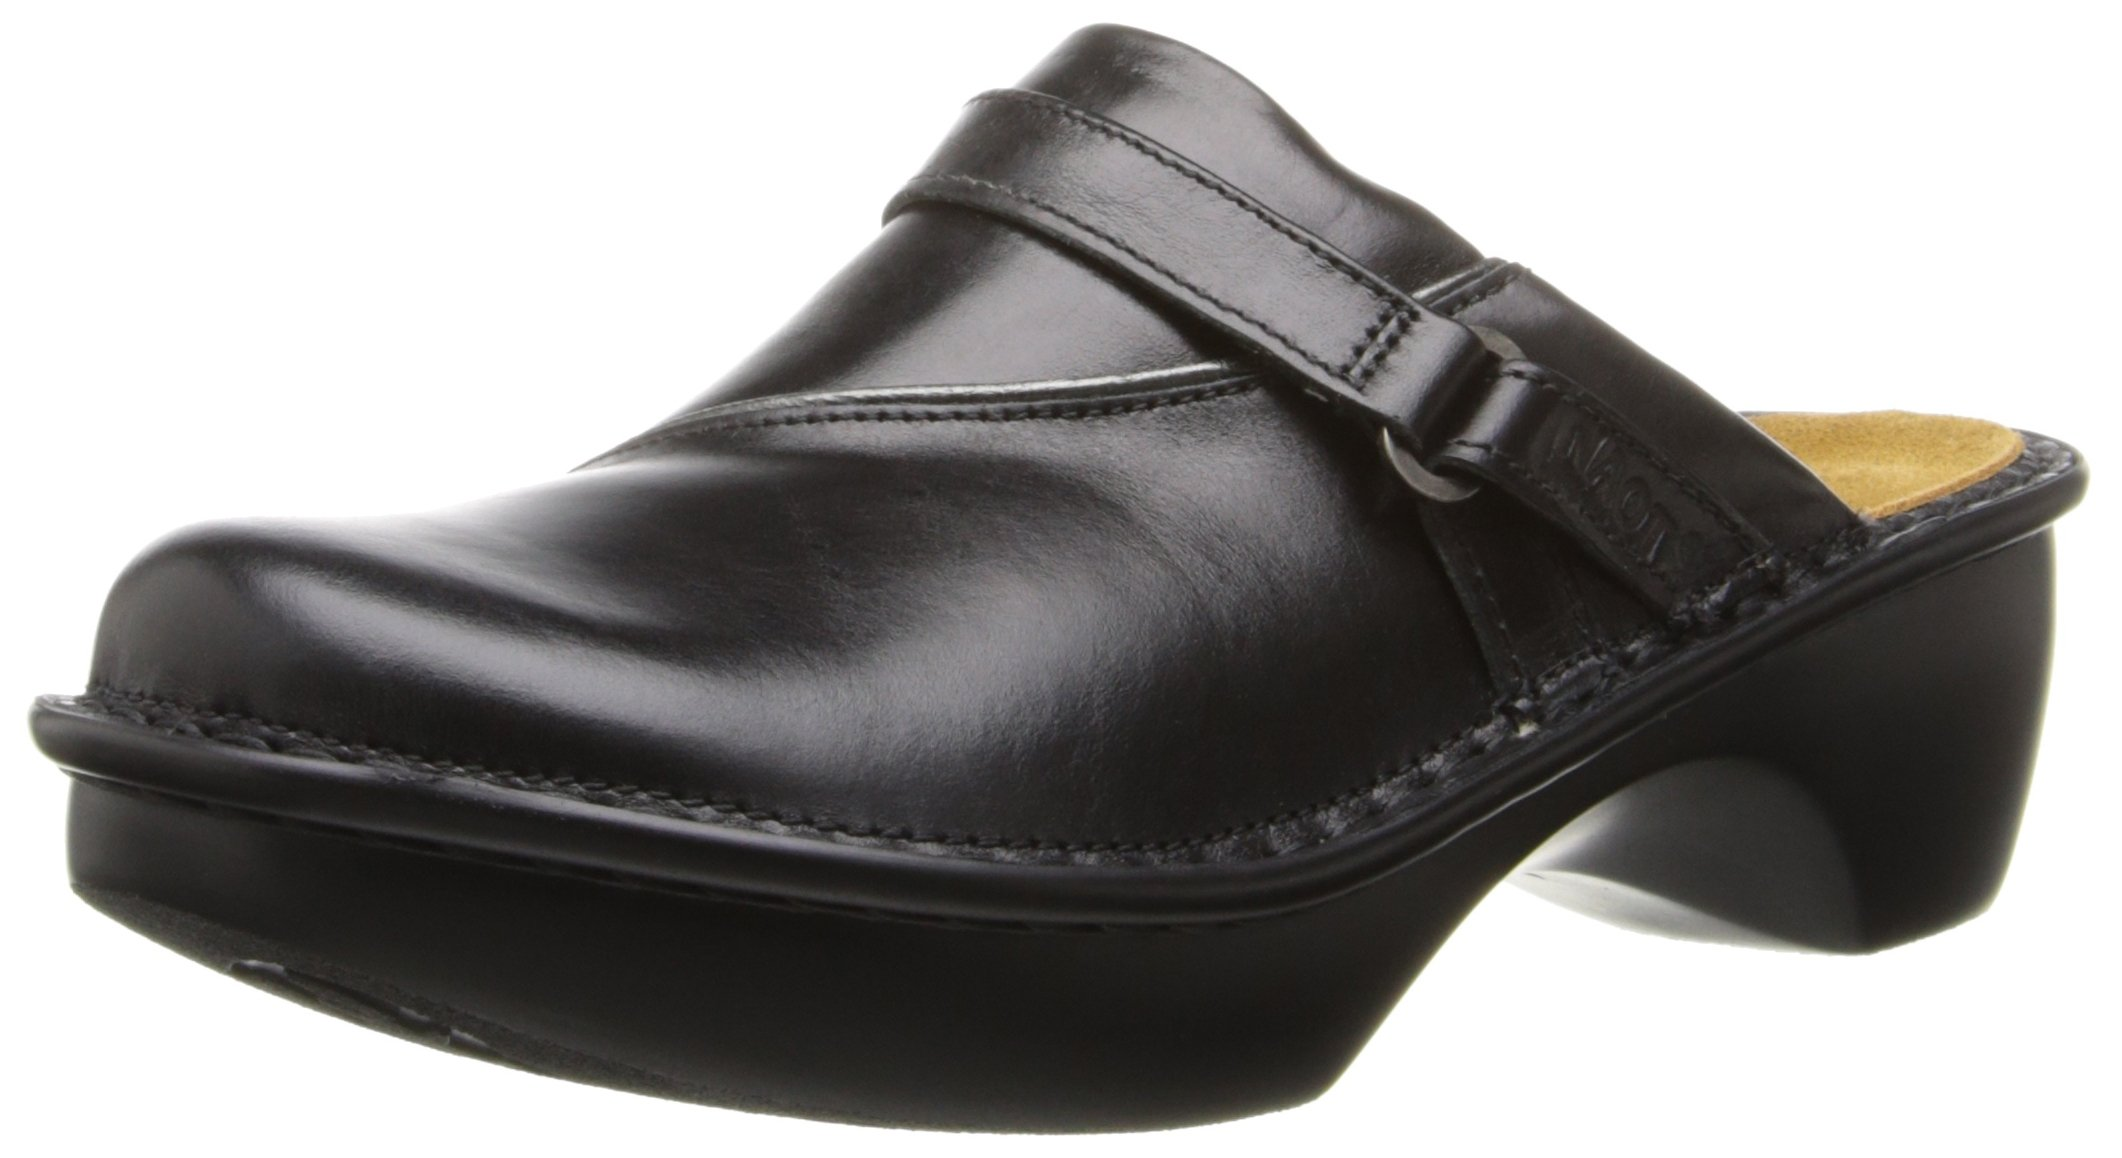 Naot Women's Florence Mule, Midnight Black Leather, 41 EU/10 M-W US